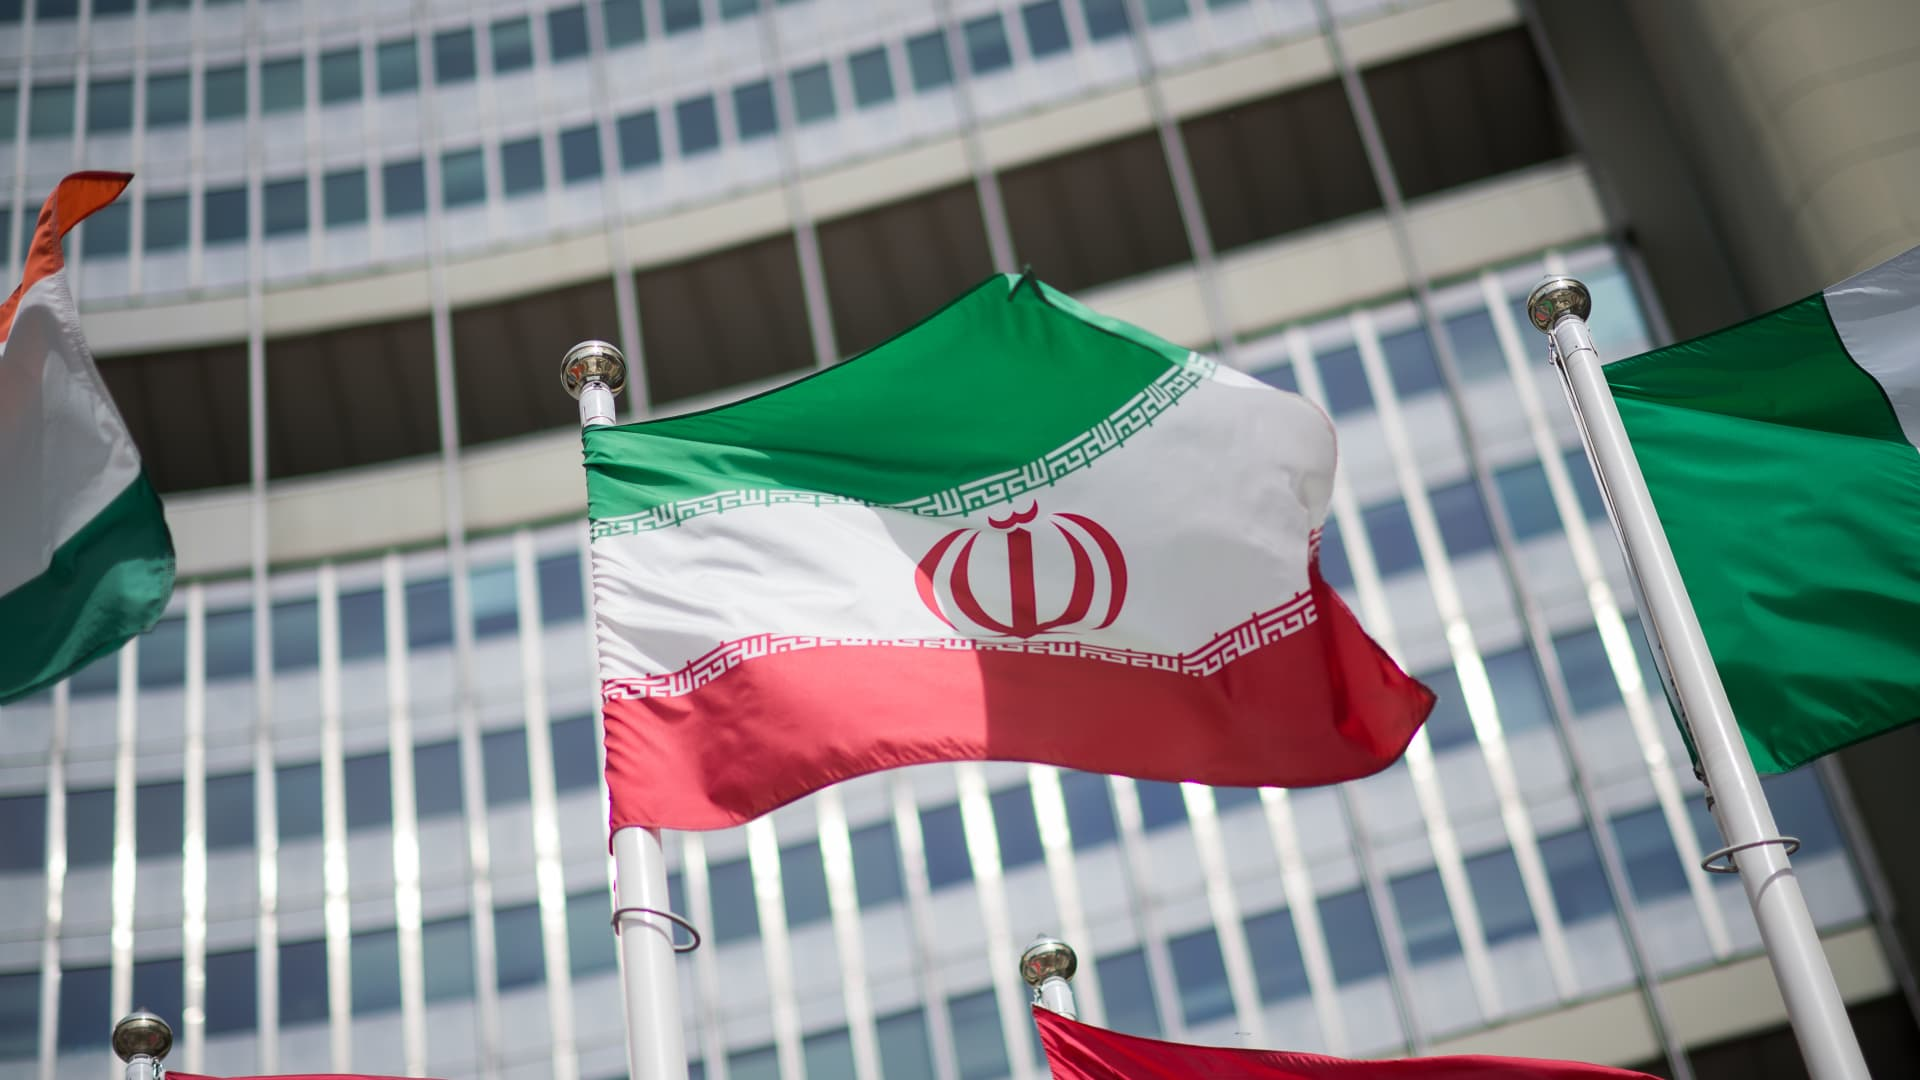 The flag of Iran is seen in front of the building of the International Atomic Energy Agency (IAEA) Headquarters ahead of a press conference by Rafael Grossi, Director General of the IAEA, about the agency's monitoring of Iran's nuclear energy program on May 24, 2021 in Vienna, Austria.